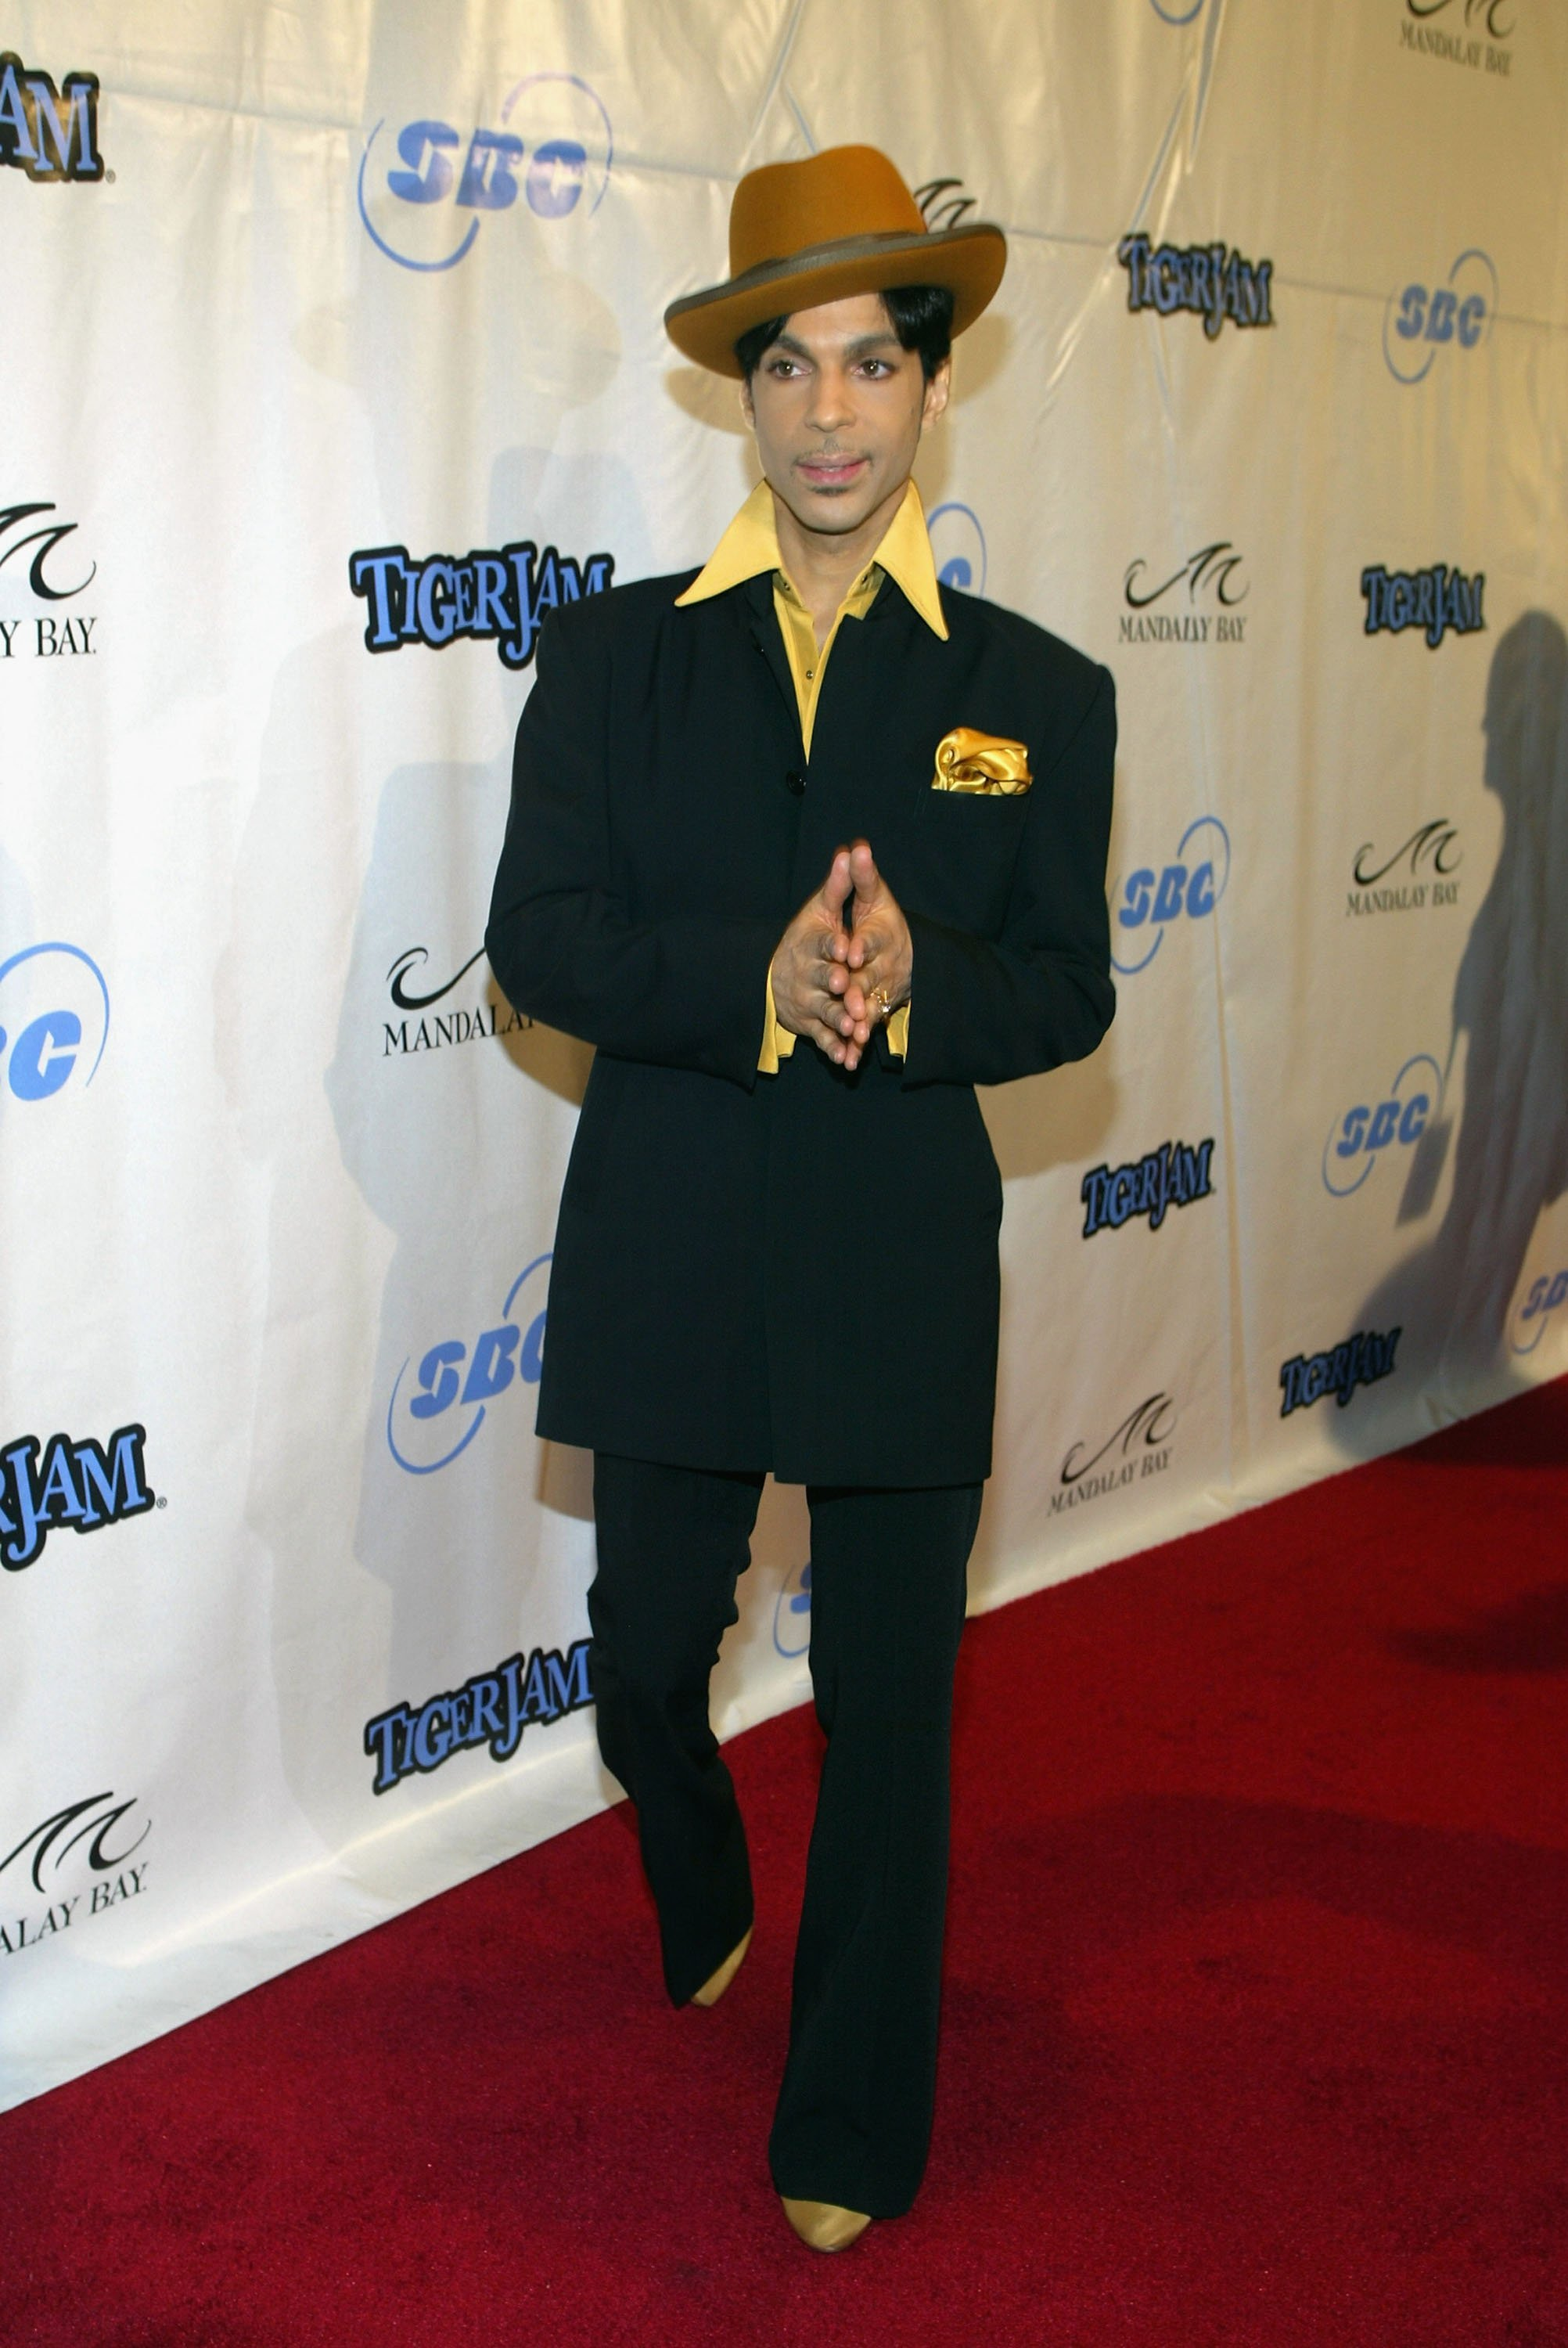 Prince attends the Tiger Woods Tiger Jam in Las Vegas, Nevada on May 29, 2004 | Photo: Getty Images